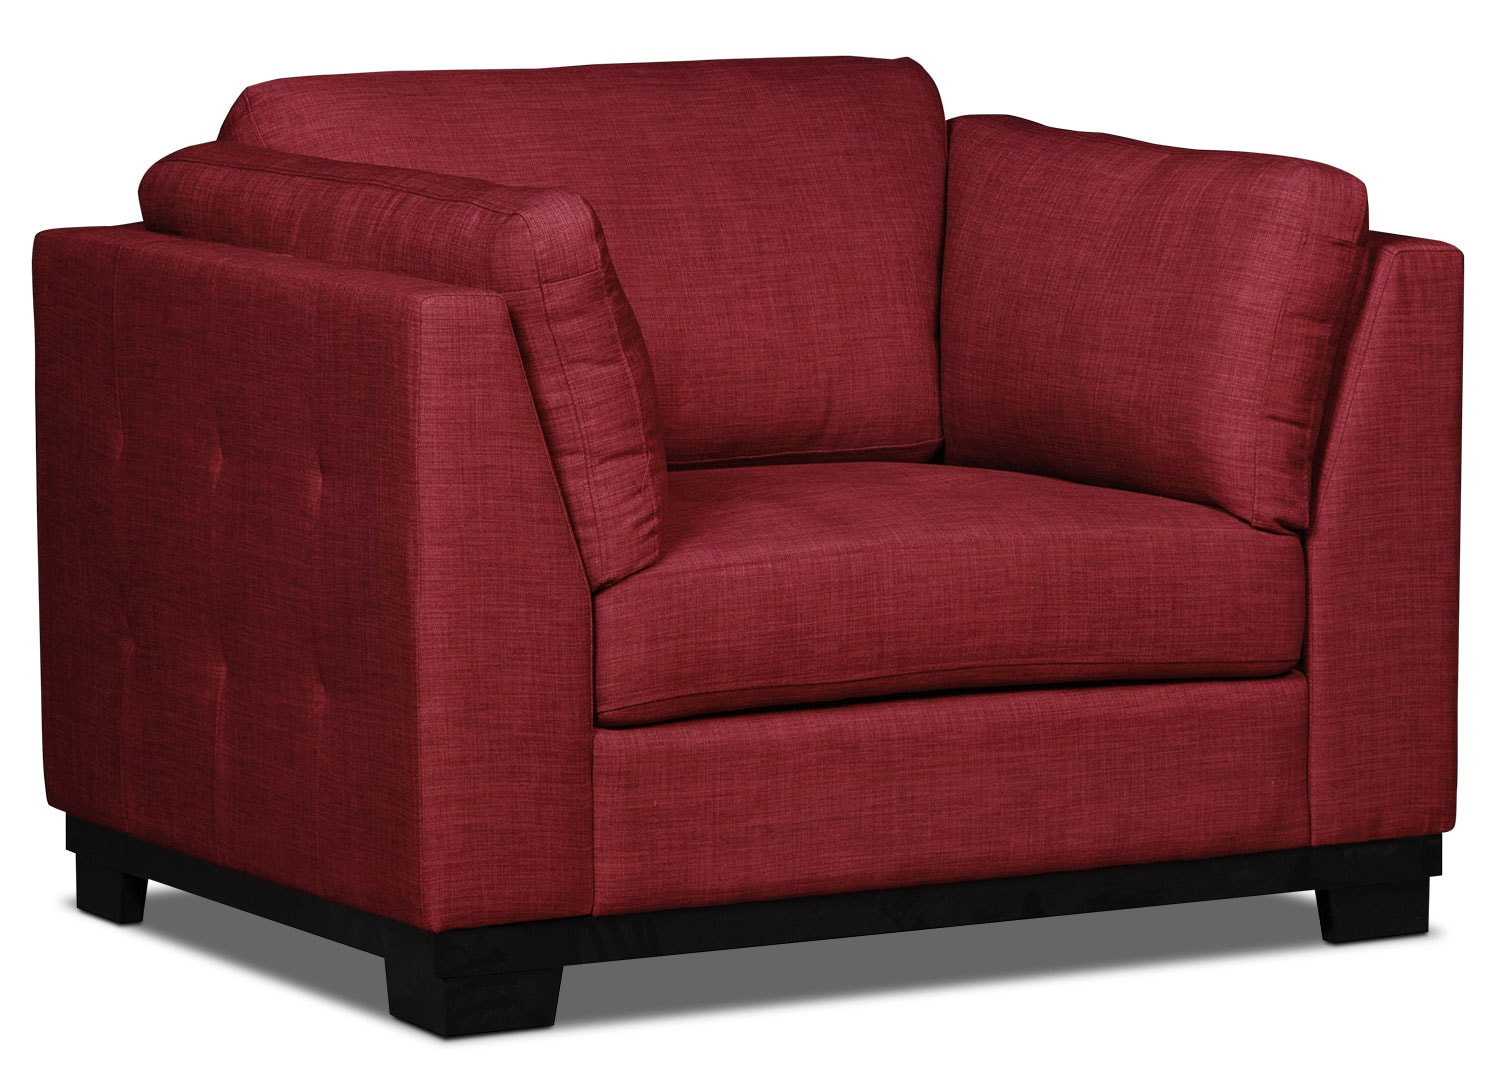 Living Room Furniture - Oakdale Linen-Look Fabric Chair – Cherry